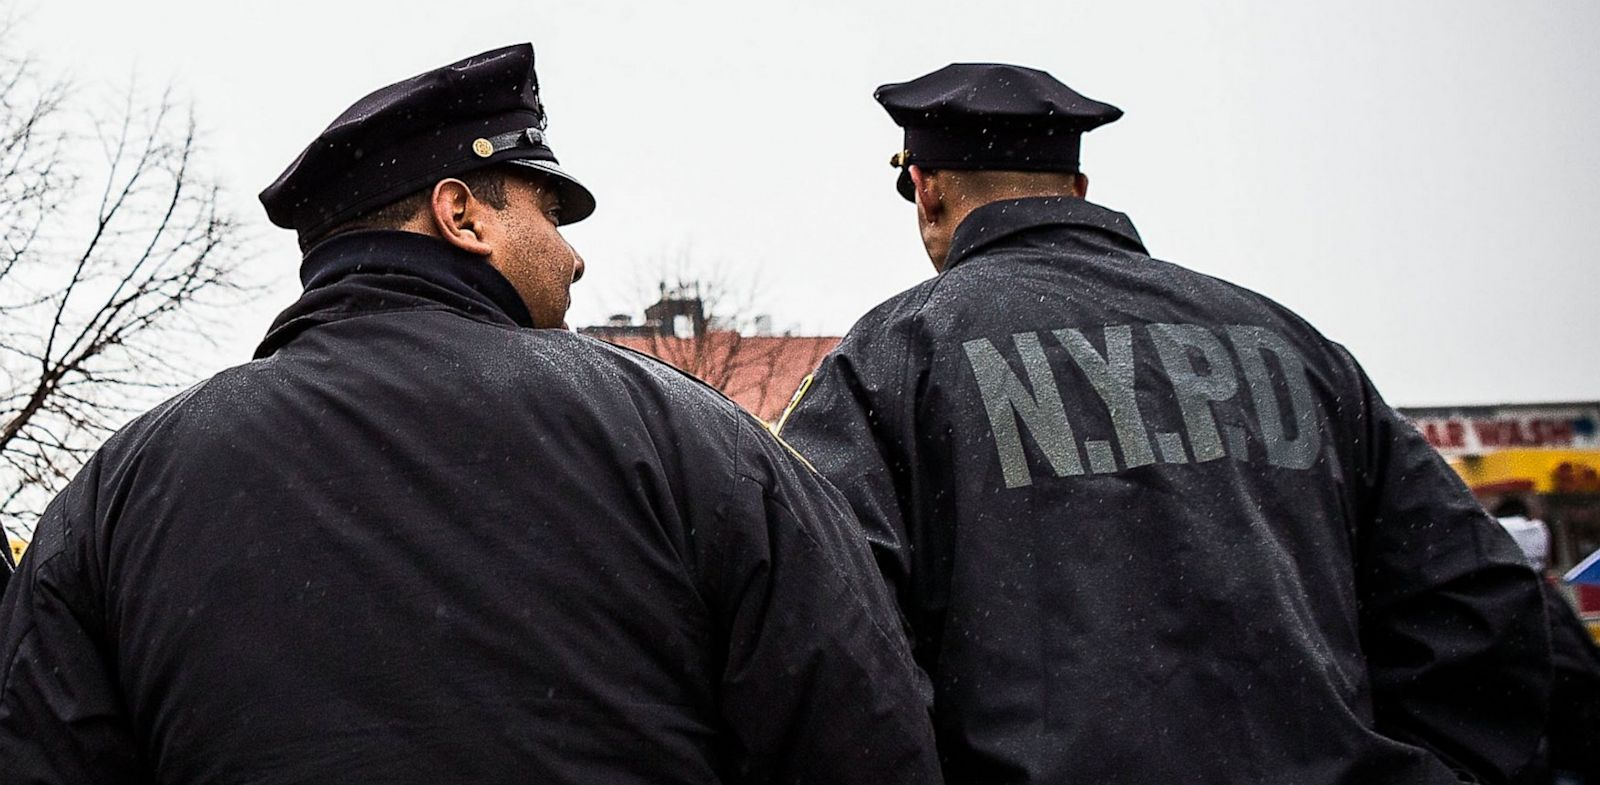 PHOTO: New York Police Department officers monitor a march against stop-and-frisk tactics used by police on February 23, 2013 in New York City.